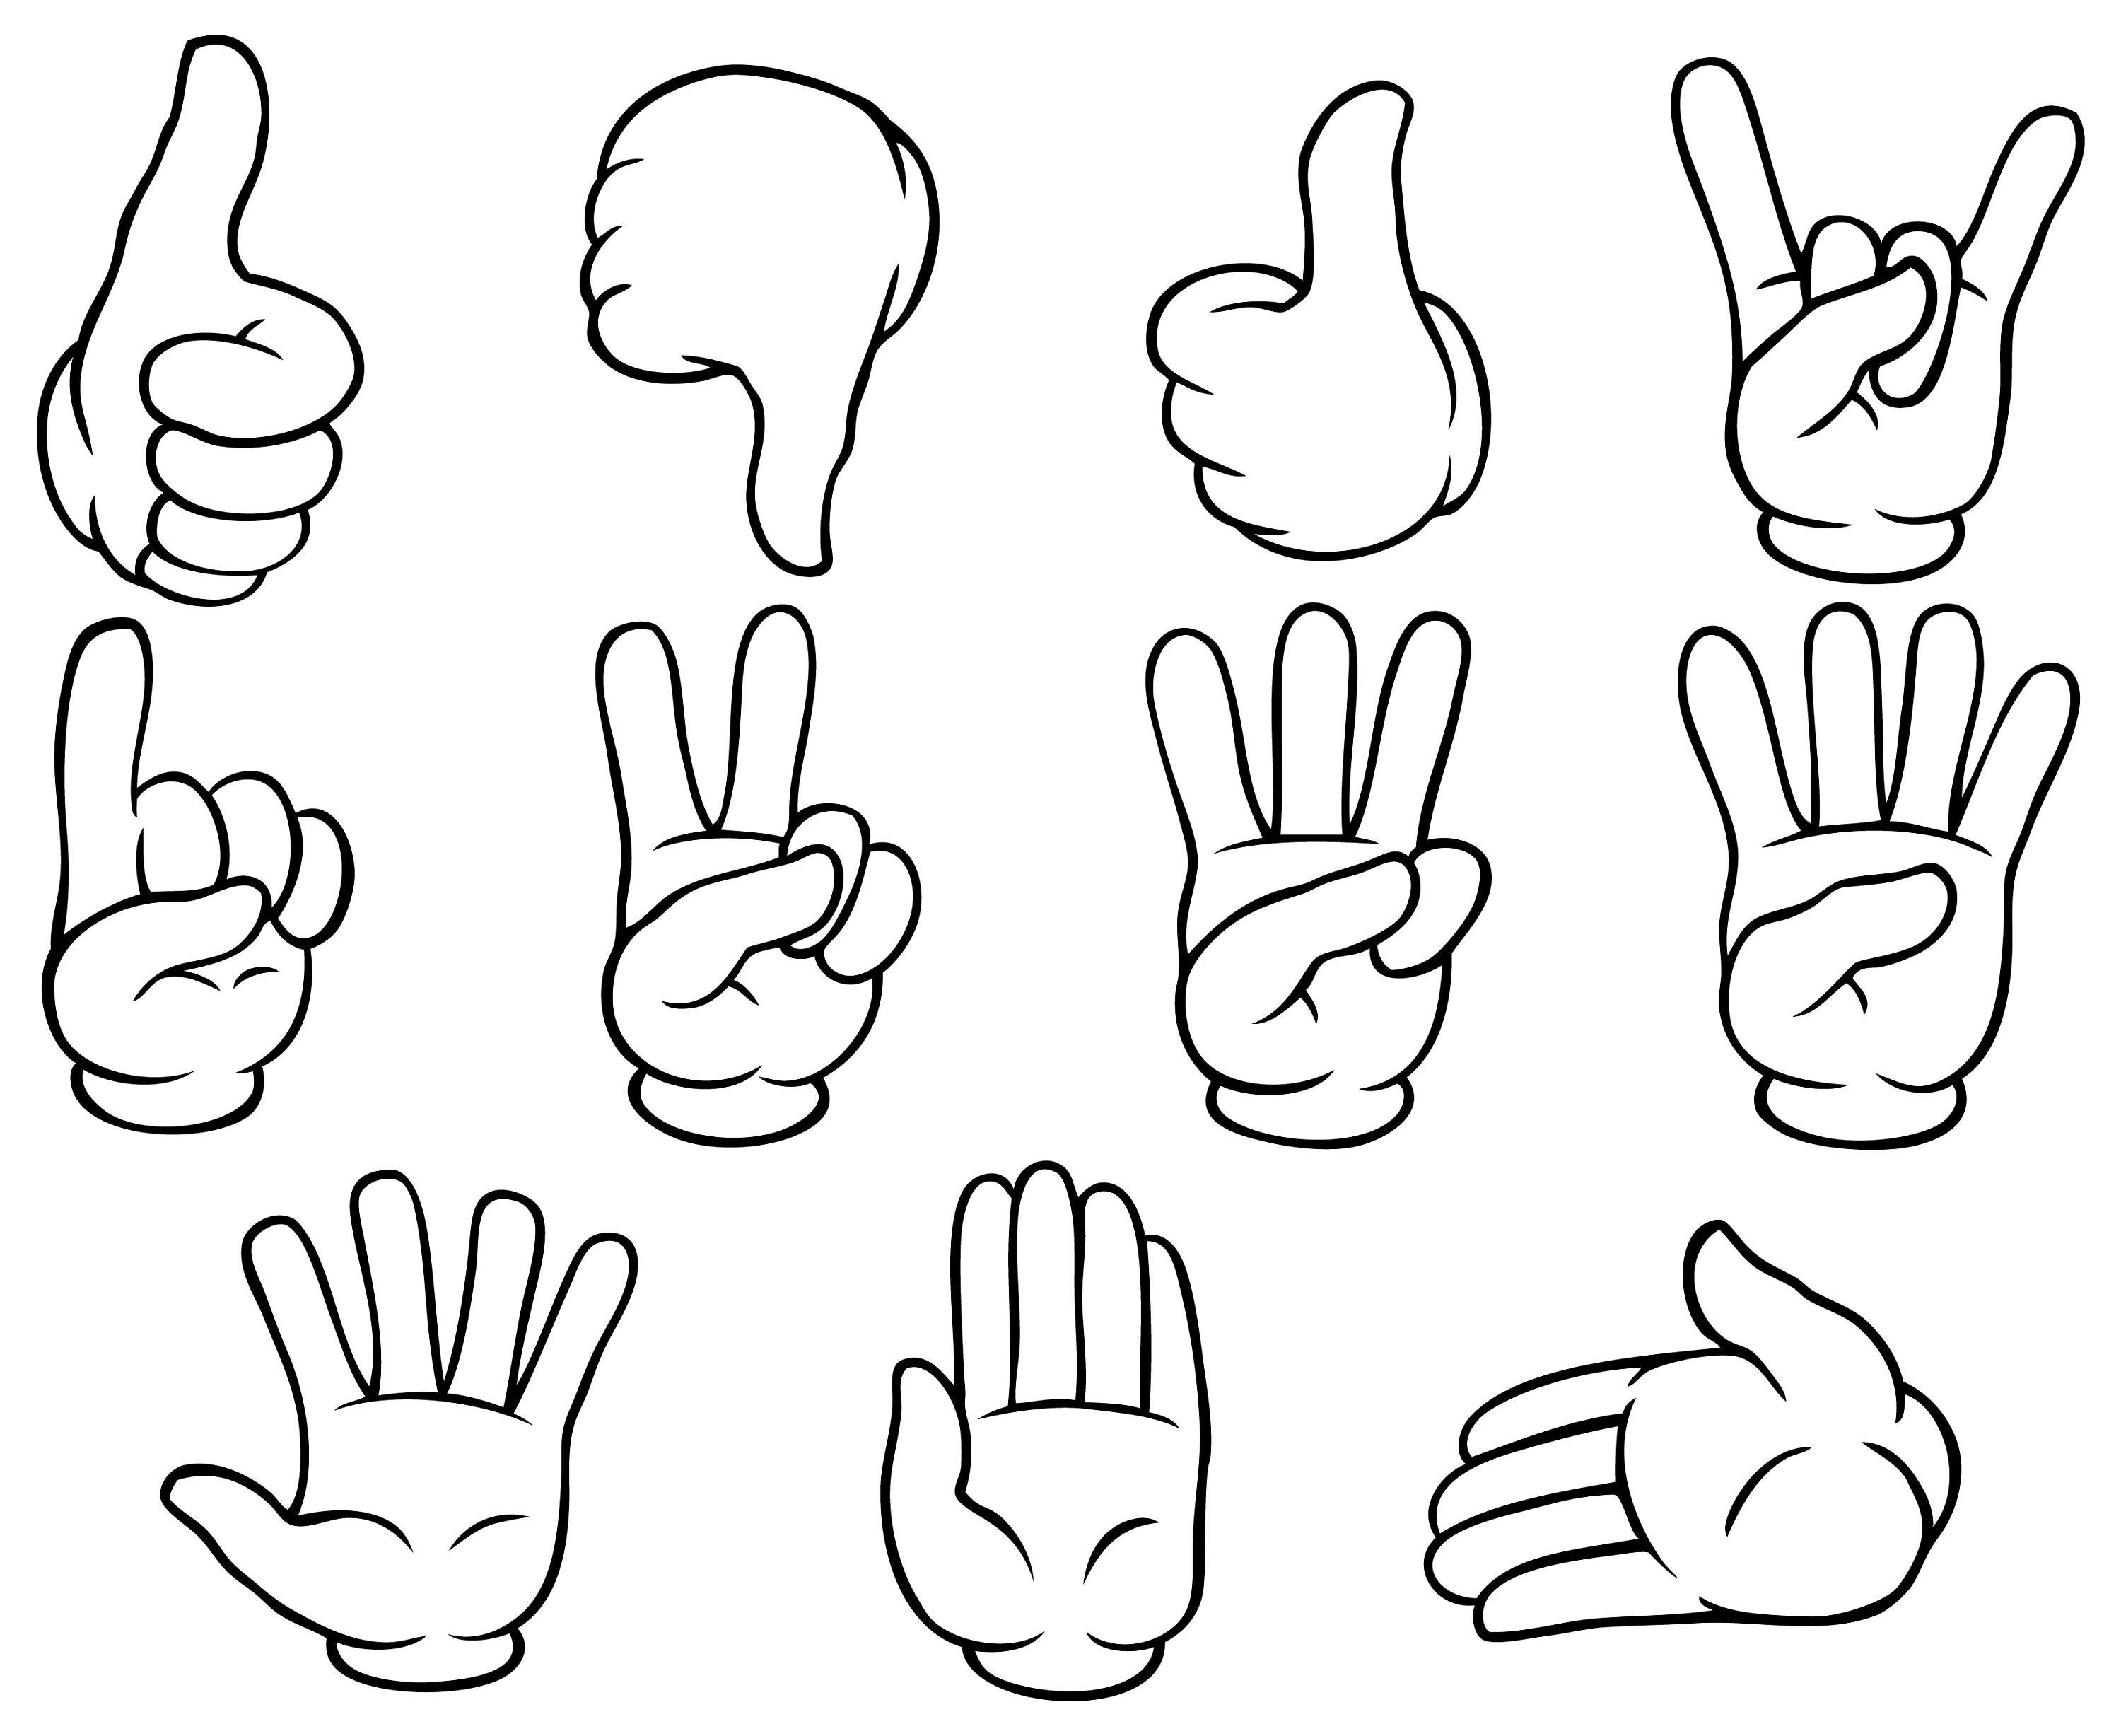 Hand Gestures Clipart 10 Free Cliparts